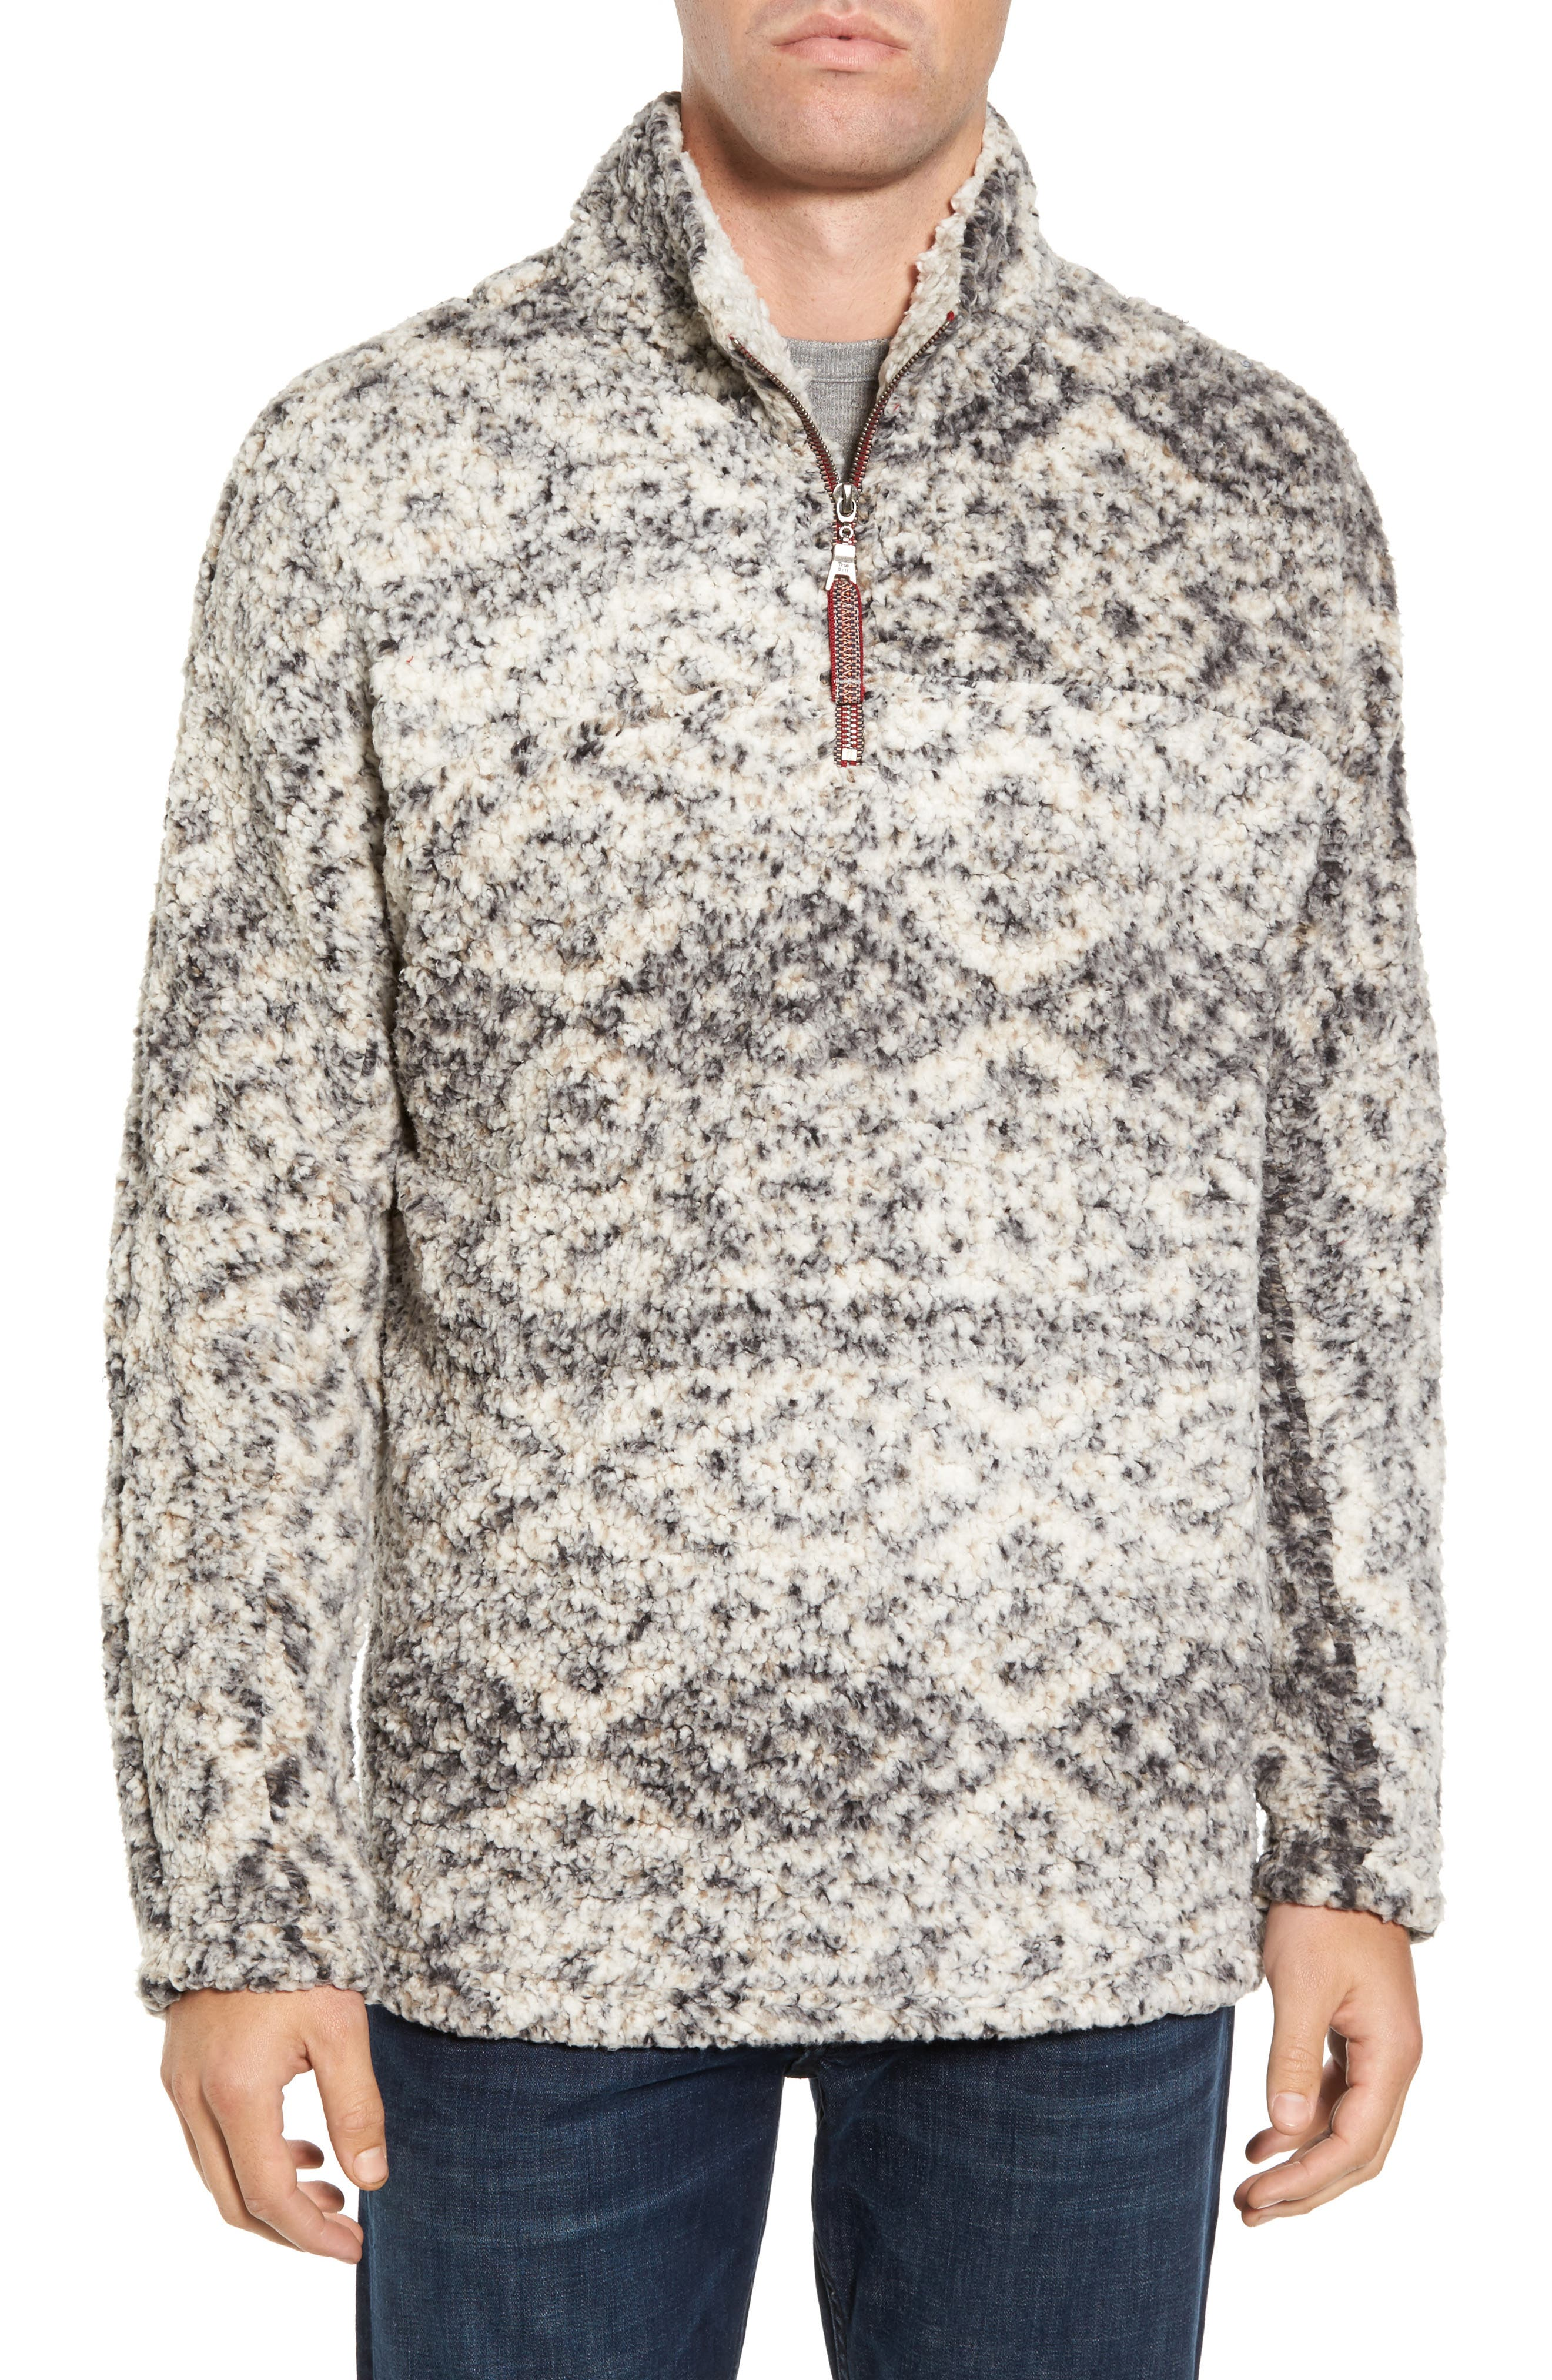 Main Image - True Grit Print Frosty Tipped Quarter Zip Pullover